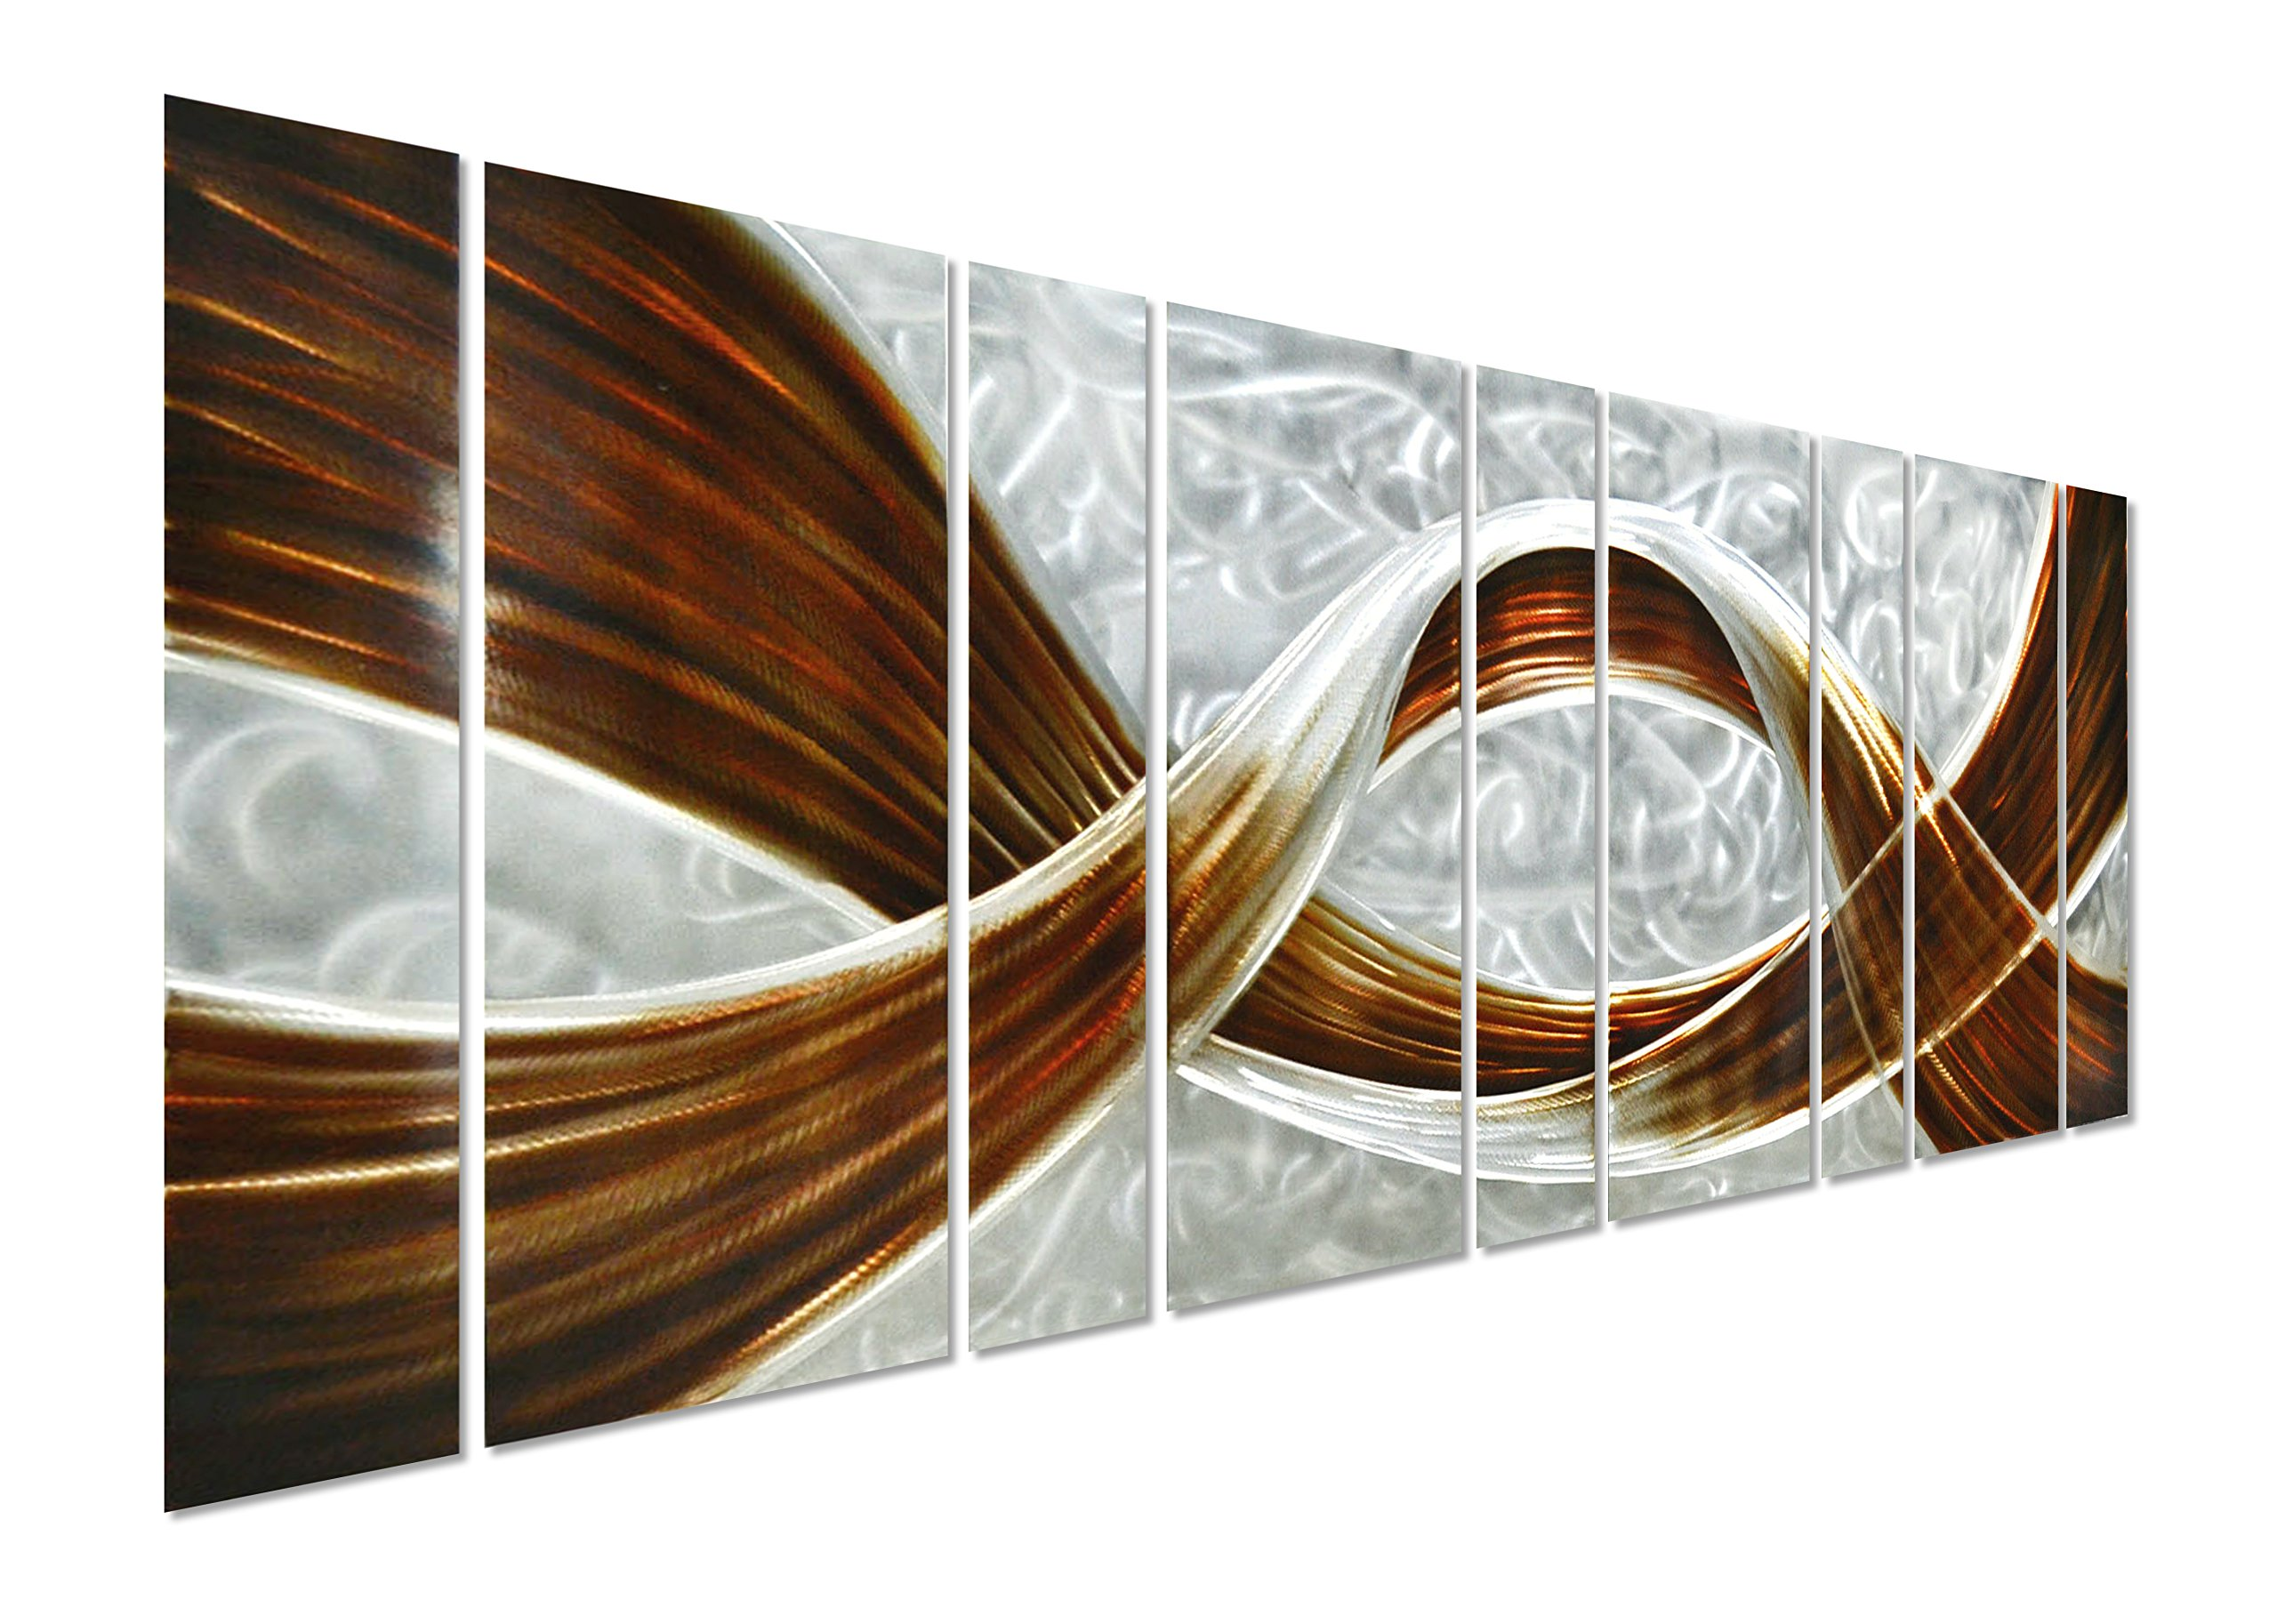 Pure Art Caramel Desire Metal Wall Art, Giant Scale Metal Wall Decor in Abstract Design, 3D Wall Art for Contemporary Decor, 9-Panels Measures 86''x 32'', Great for Indoor and Outdoor Settings by Pure Art